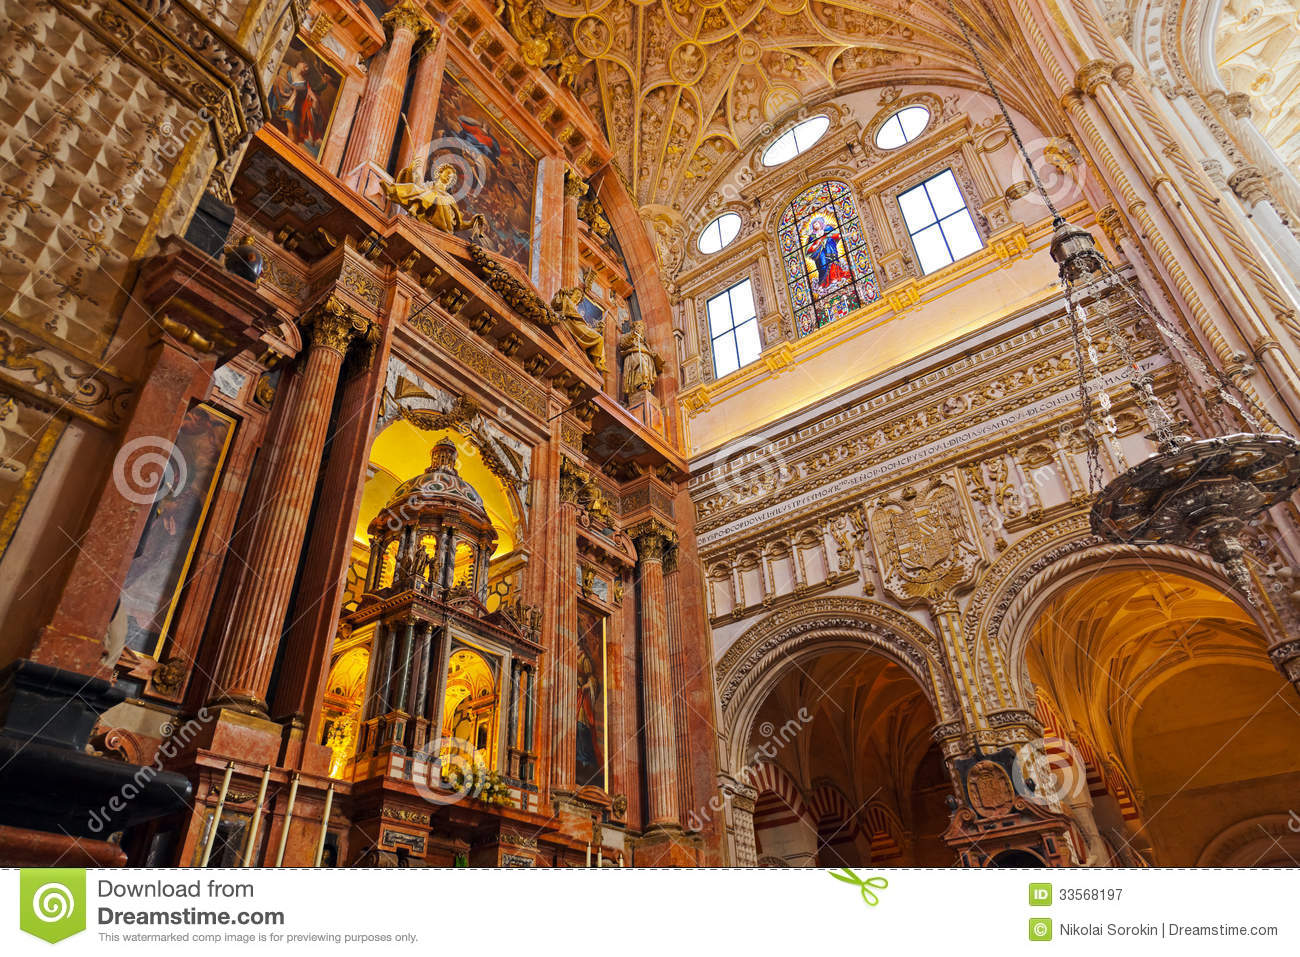 Great Mosque Mezquita Interior In Cordoba Spain Stock Image - Image: 33568197